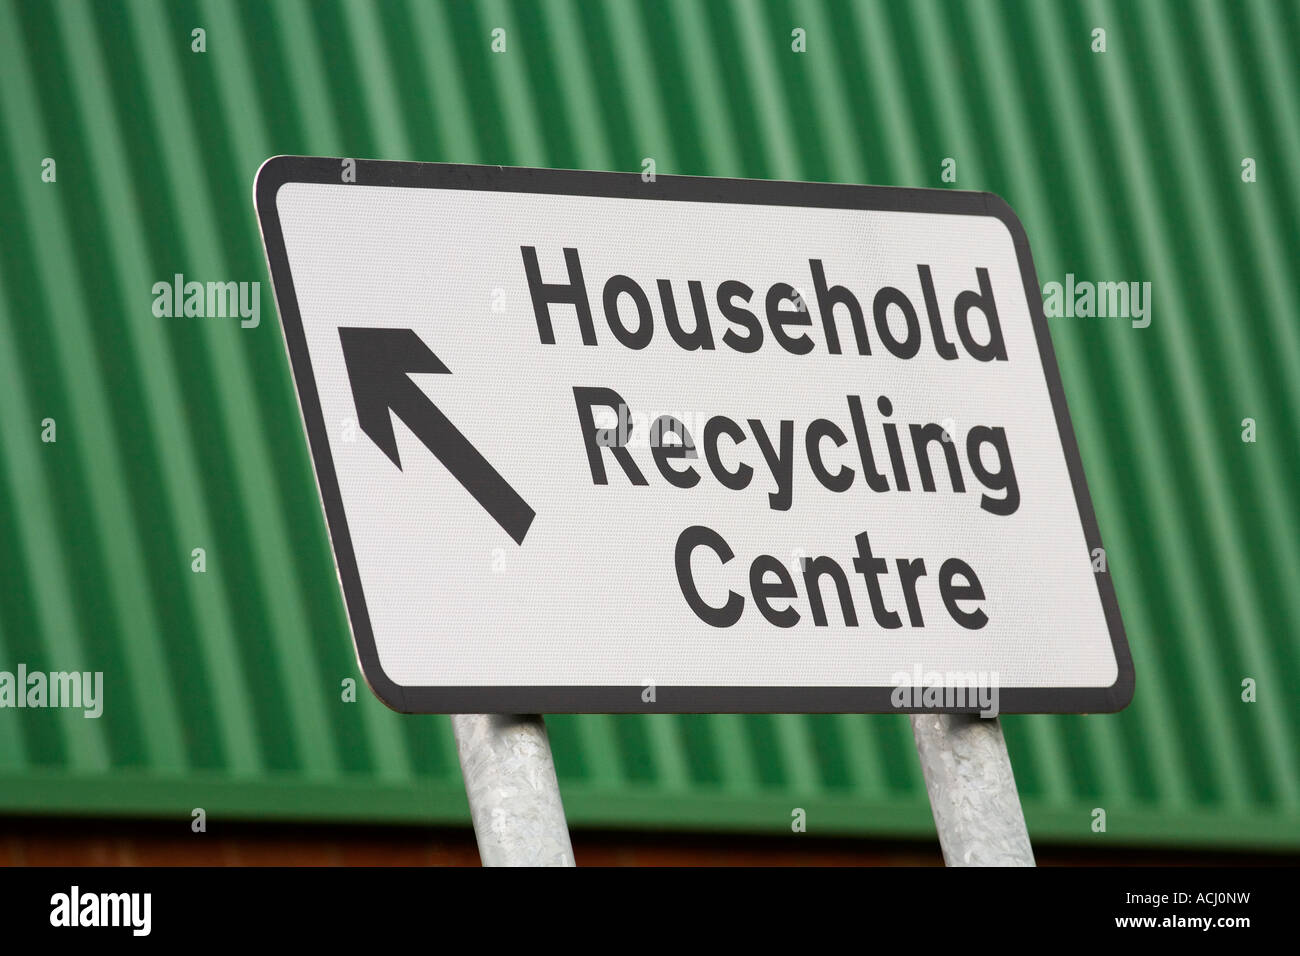 Household recycling centre street sign - Stock Image